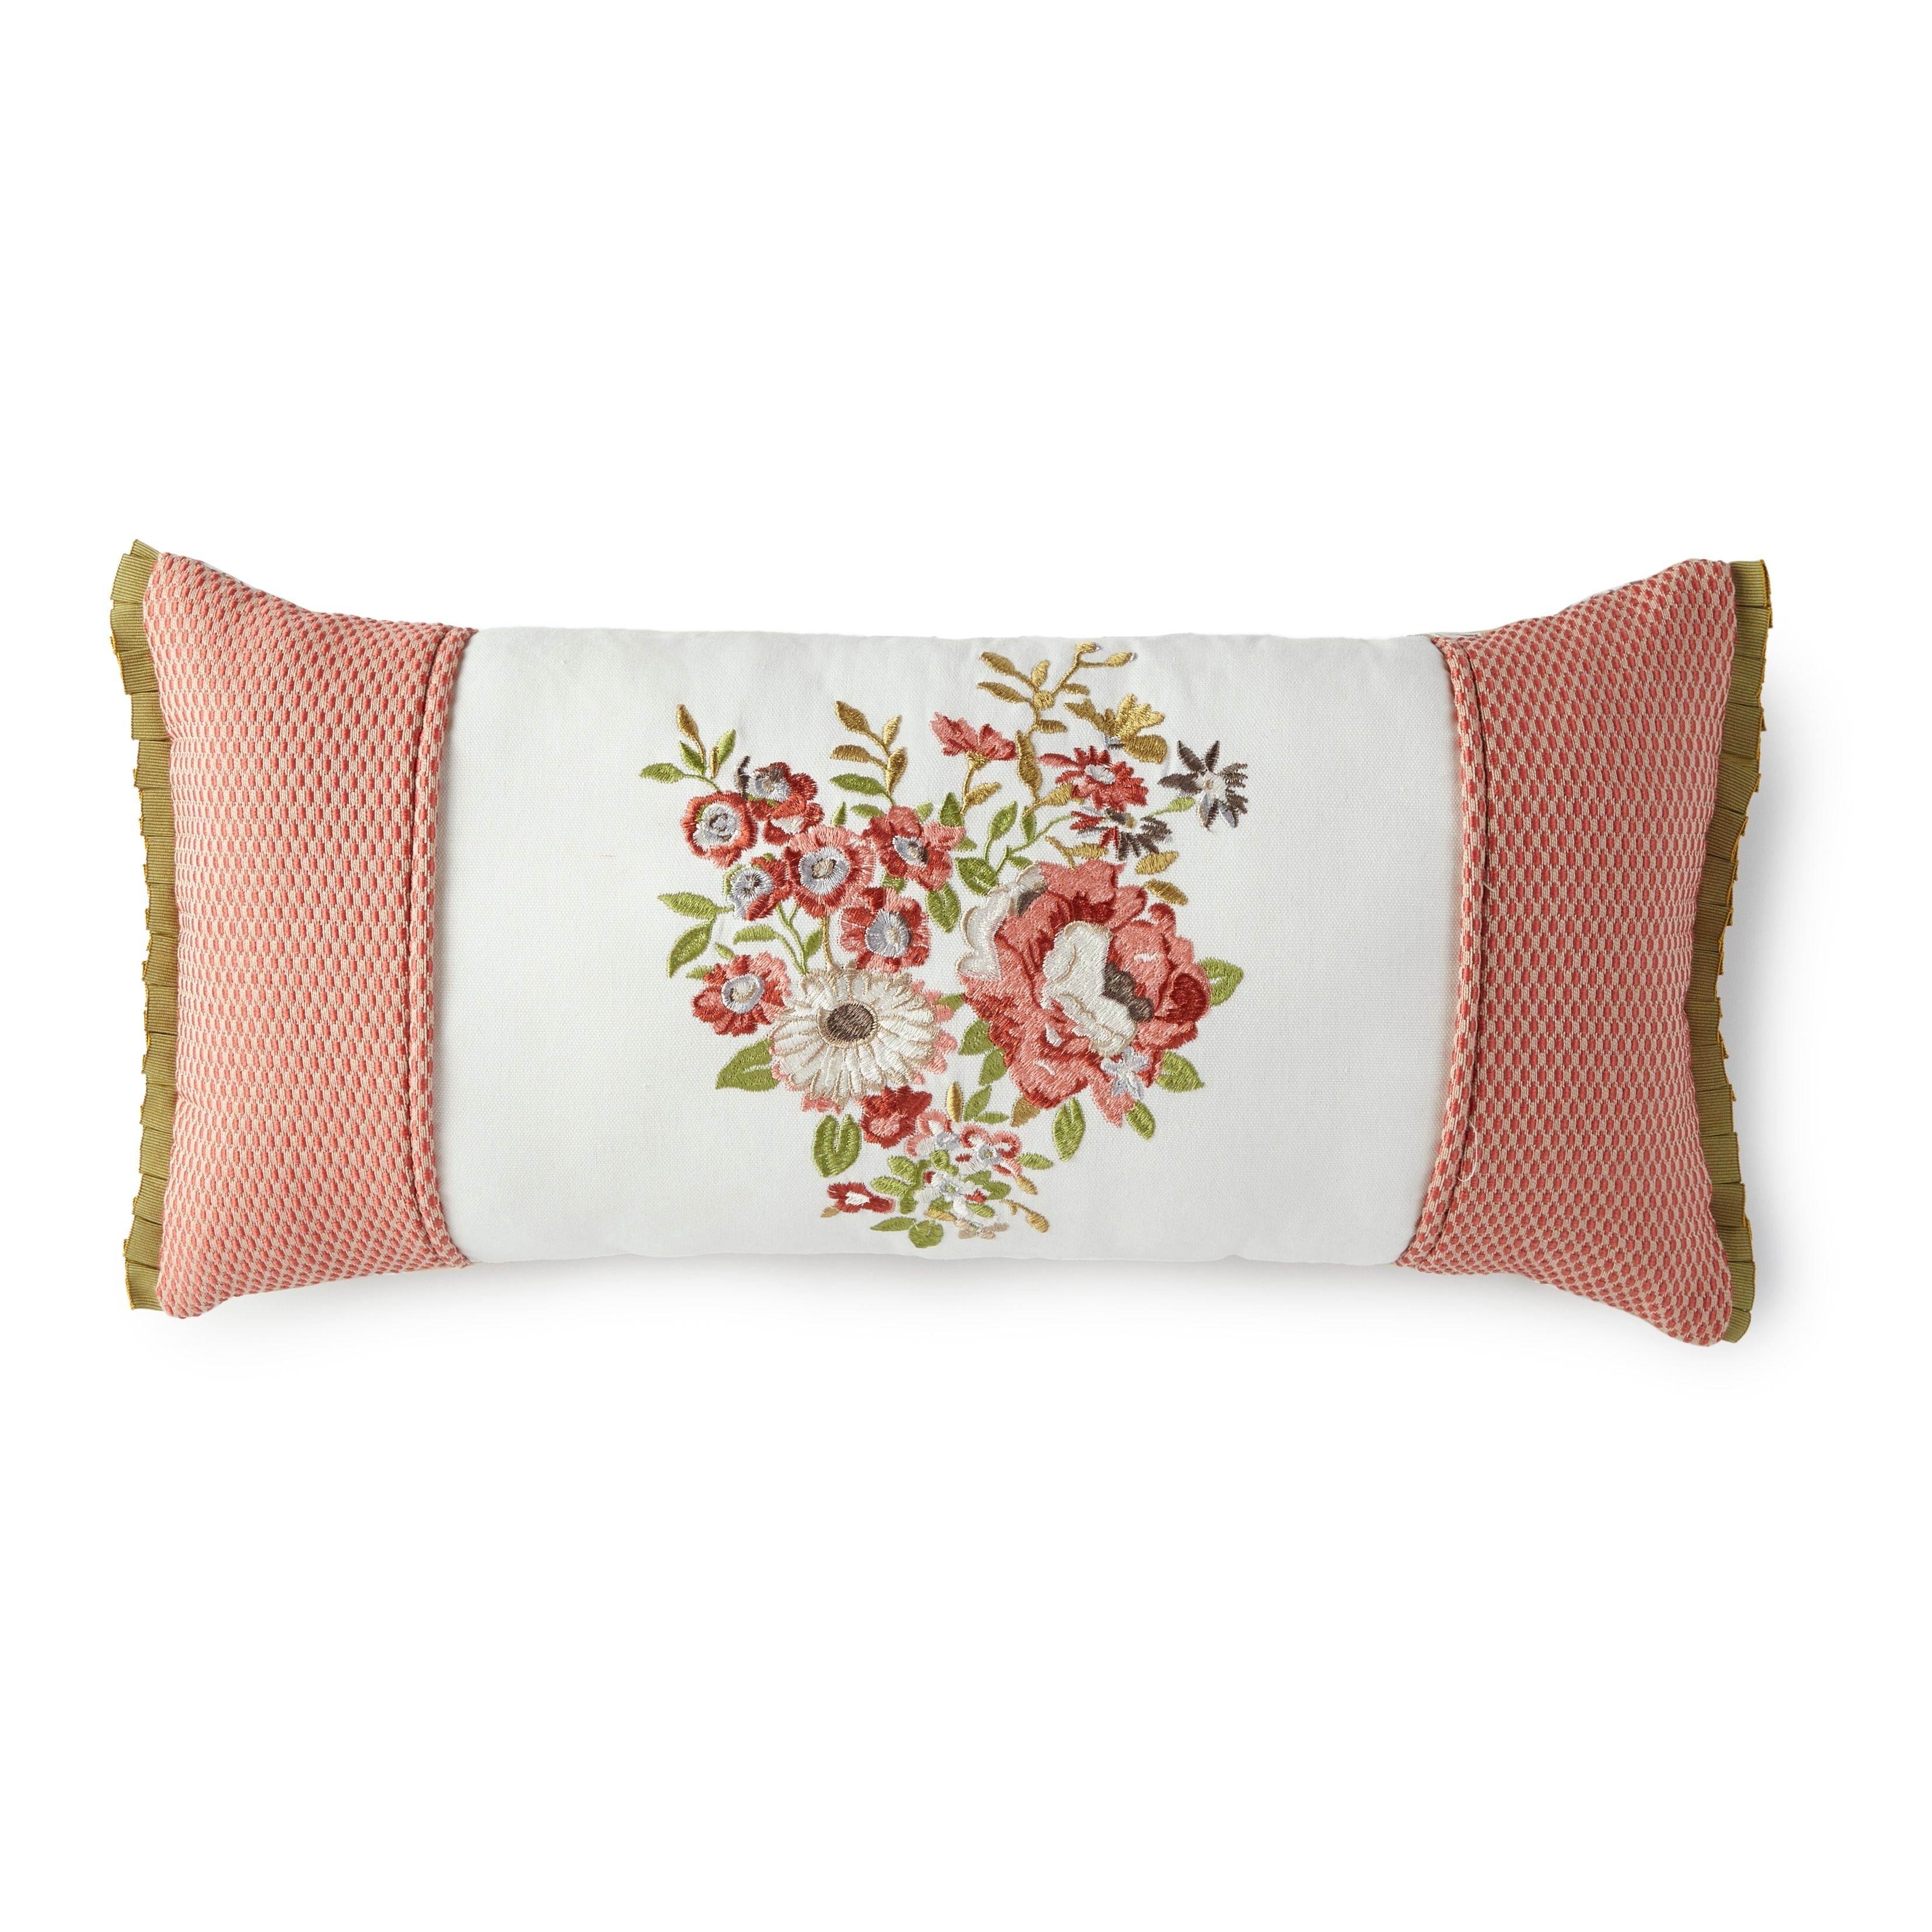 Lorraine Floral Embroidered Throw Pillow Overstock 25859433